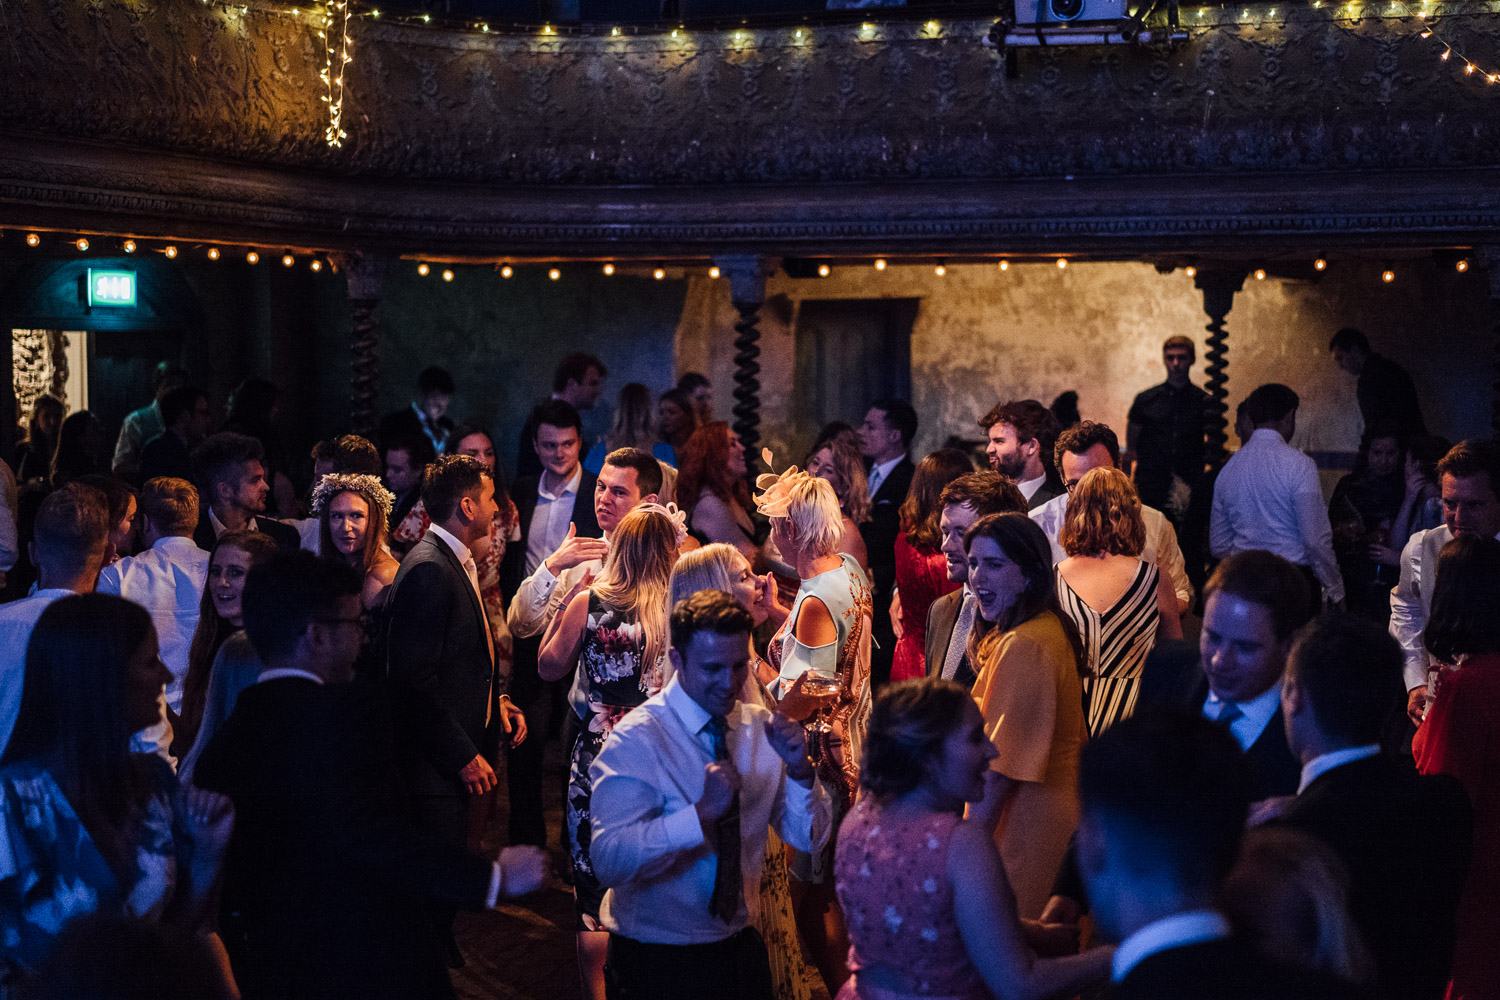 dancing in wilton's music hall wedding by london wedding photographer the shannons photography